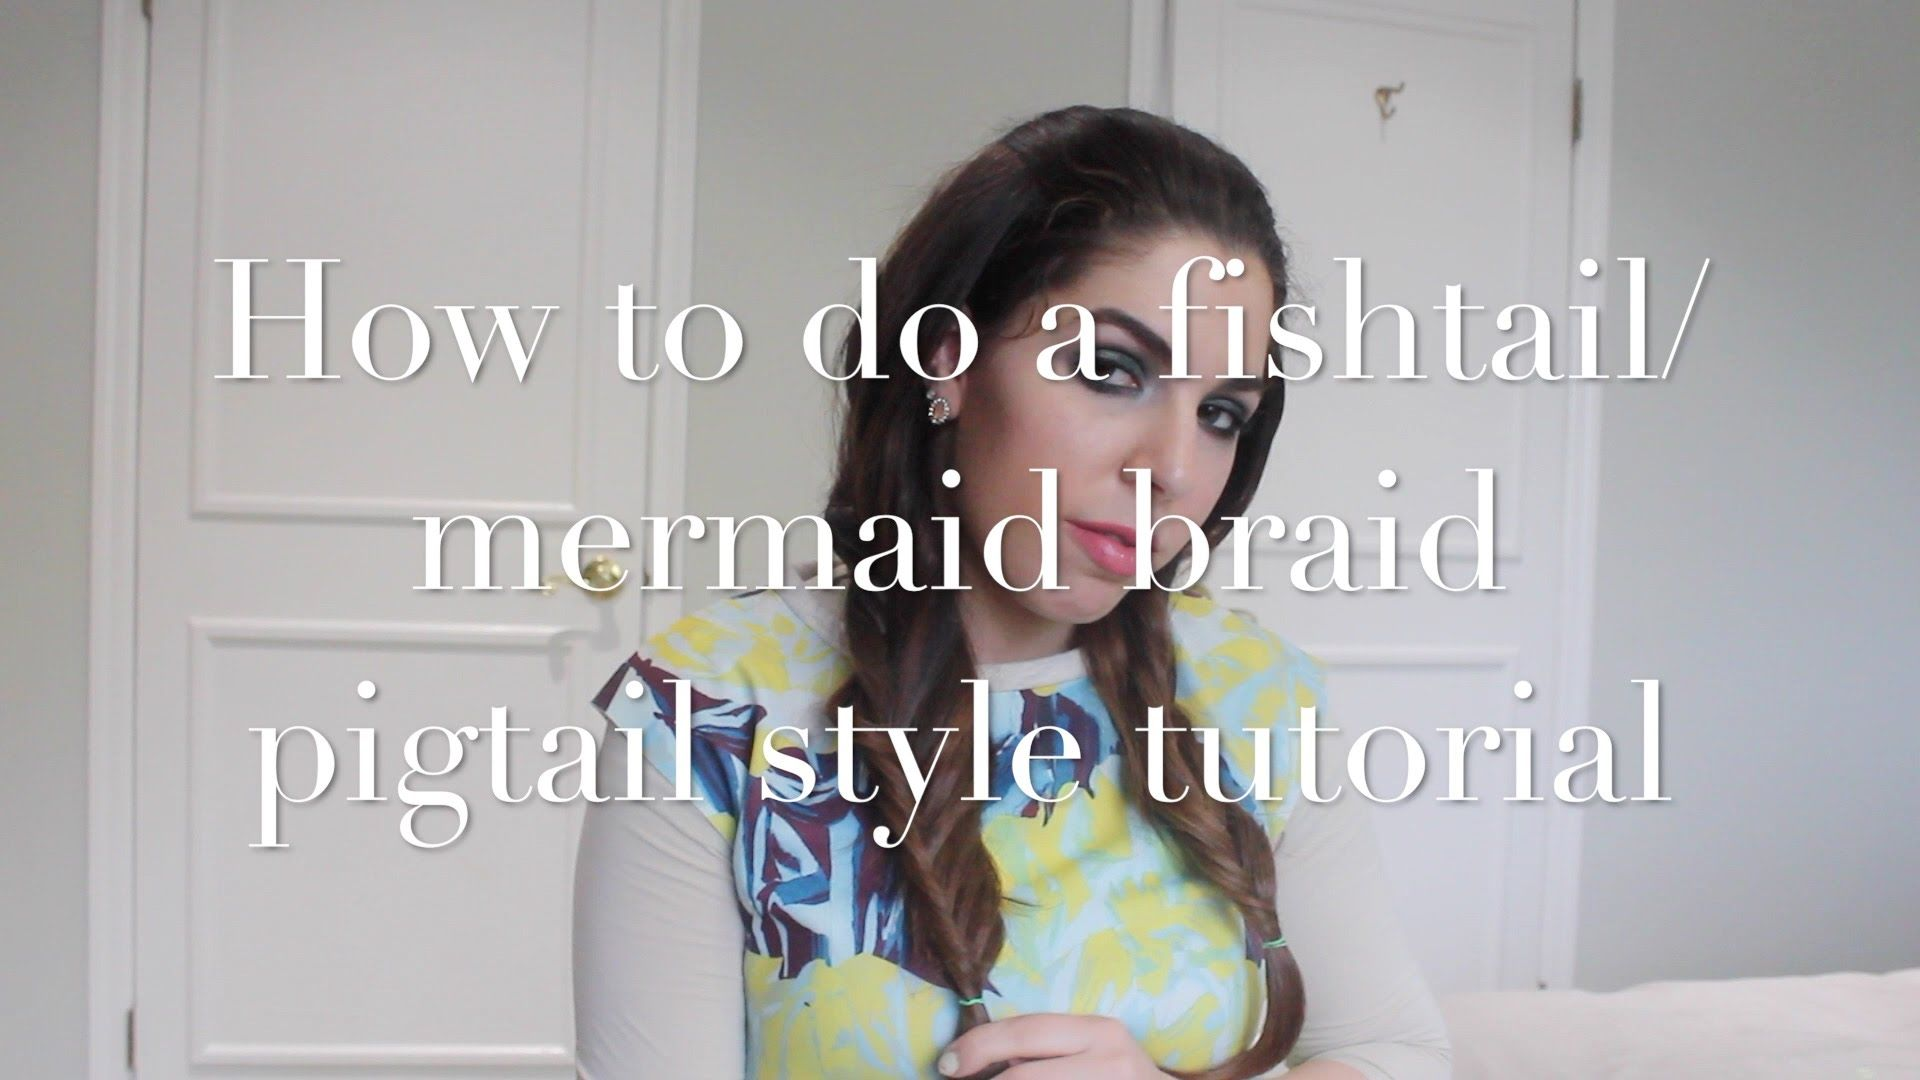 How to do a fishtail/mermaid pigtail style braids tutorial